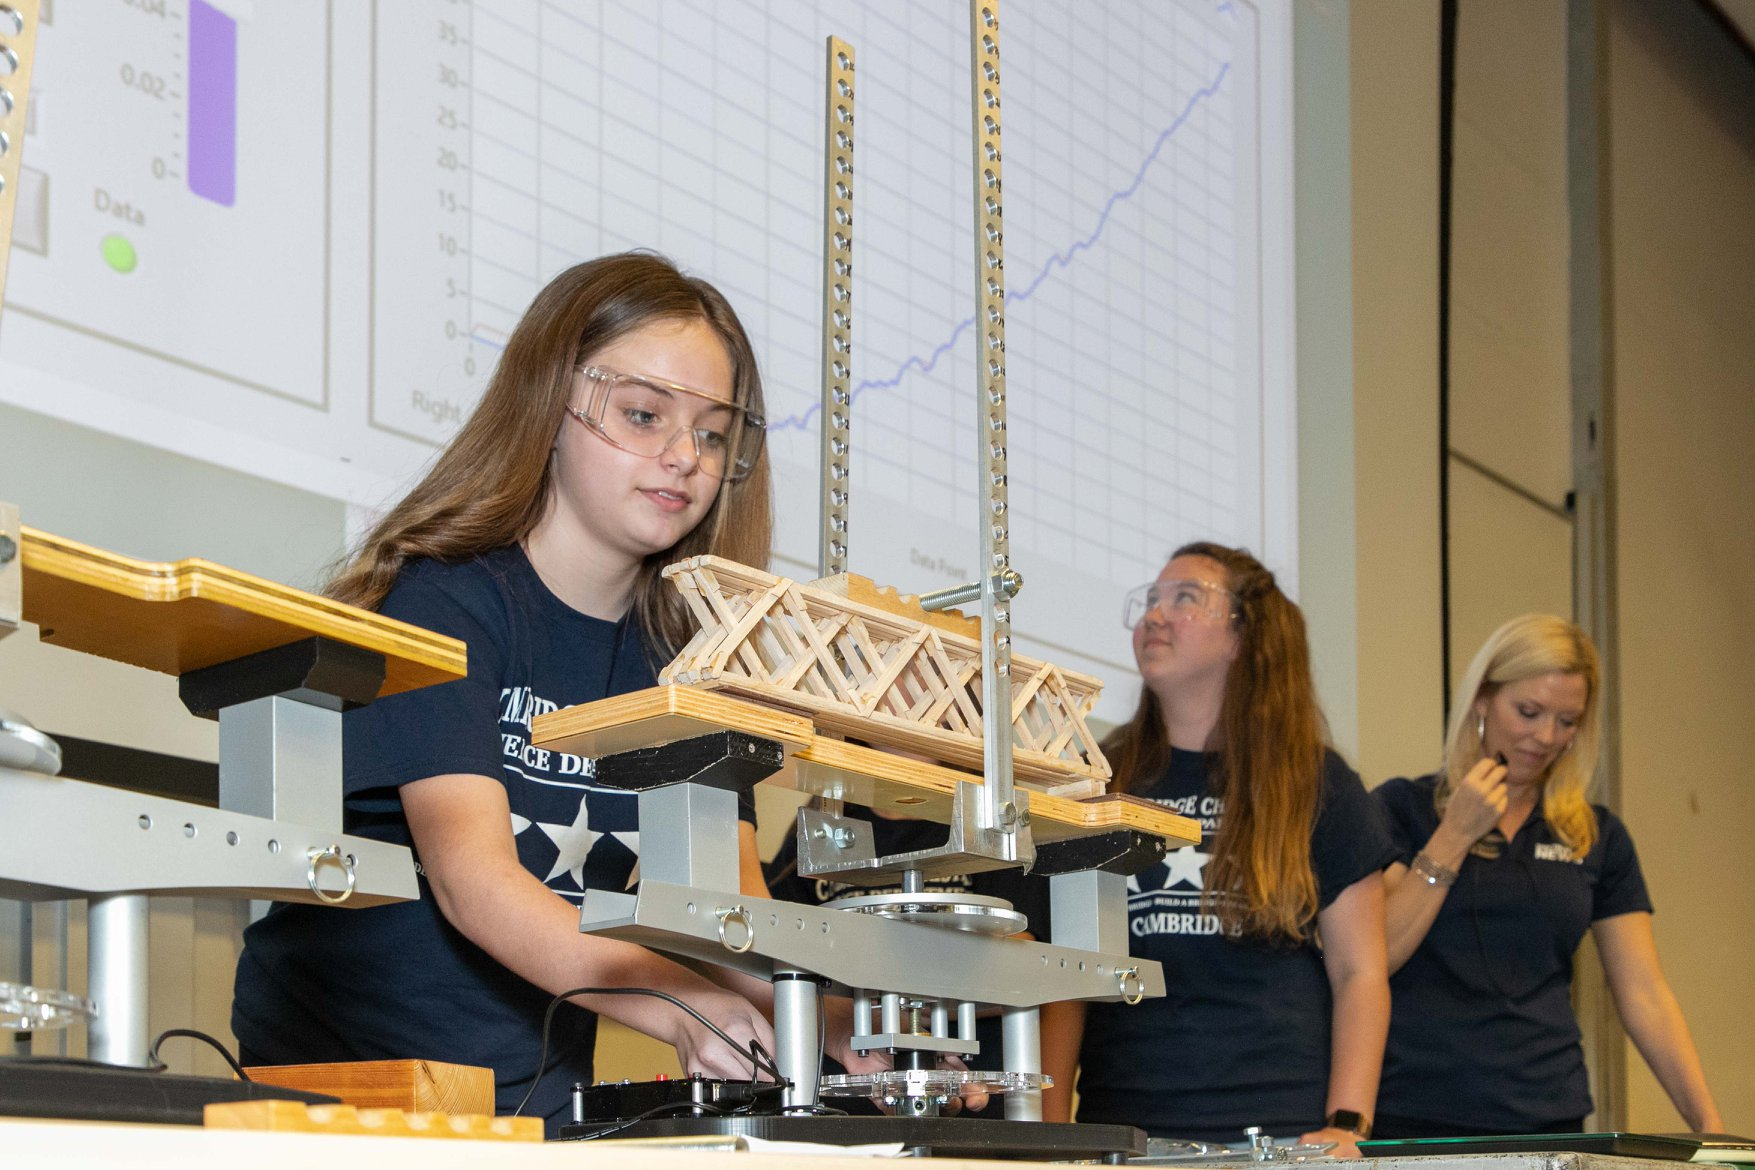 42 Teams Competed in the USF-Selmon Balsa Bridge Design Competition. Winners Announced